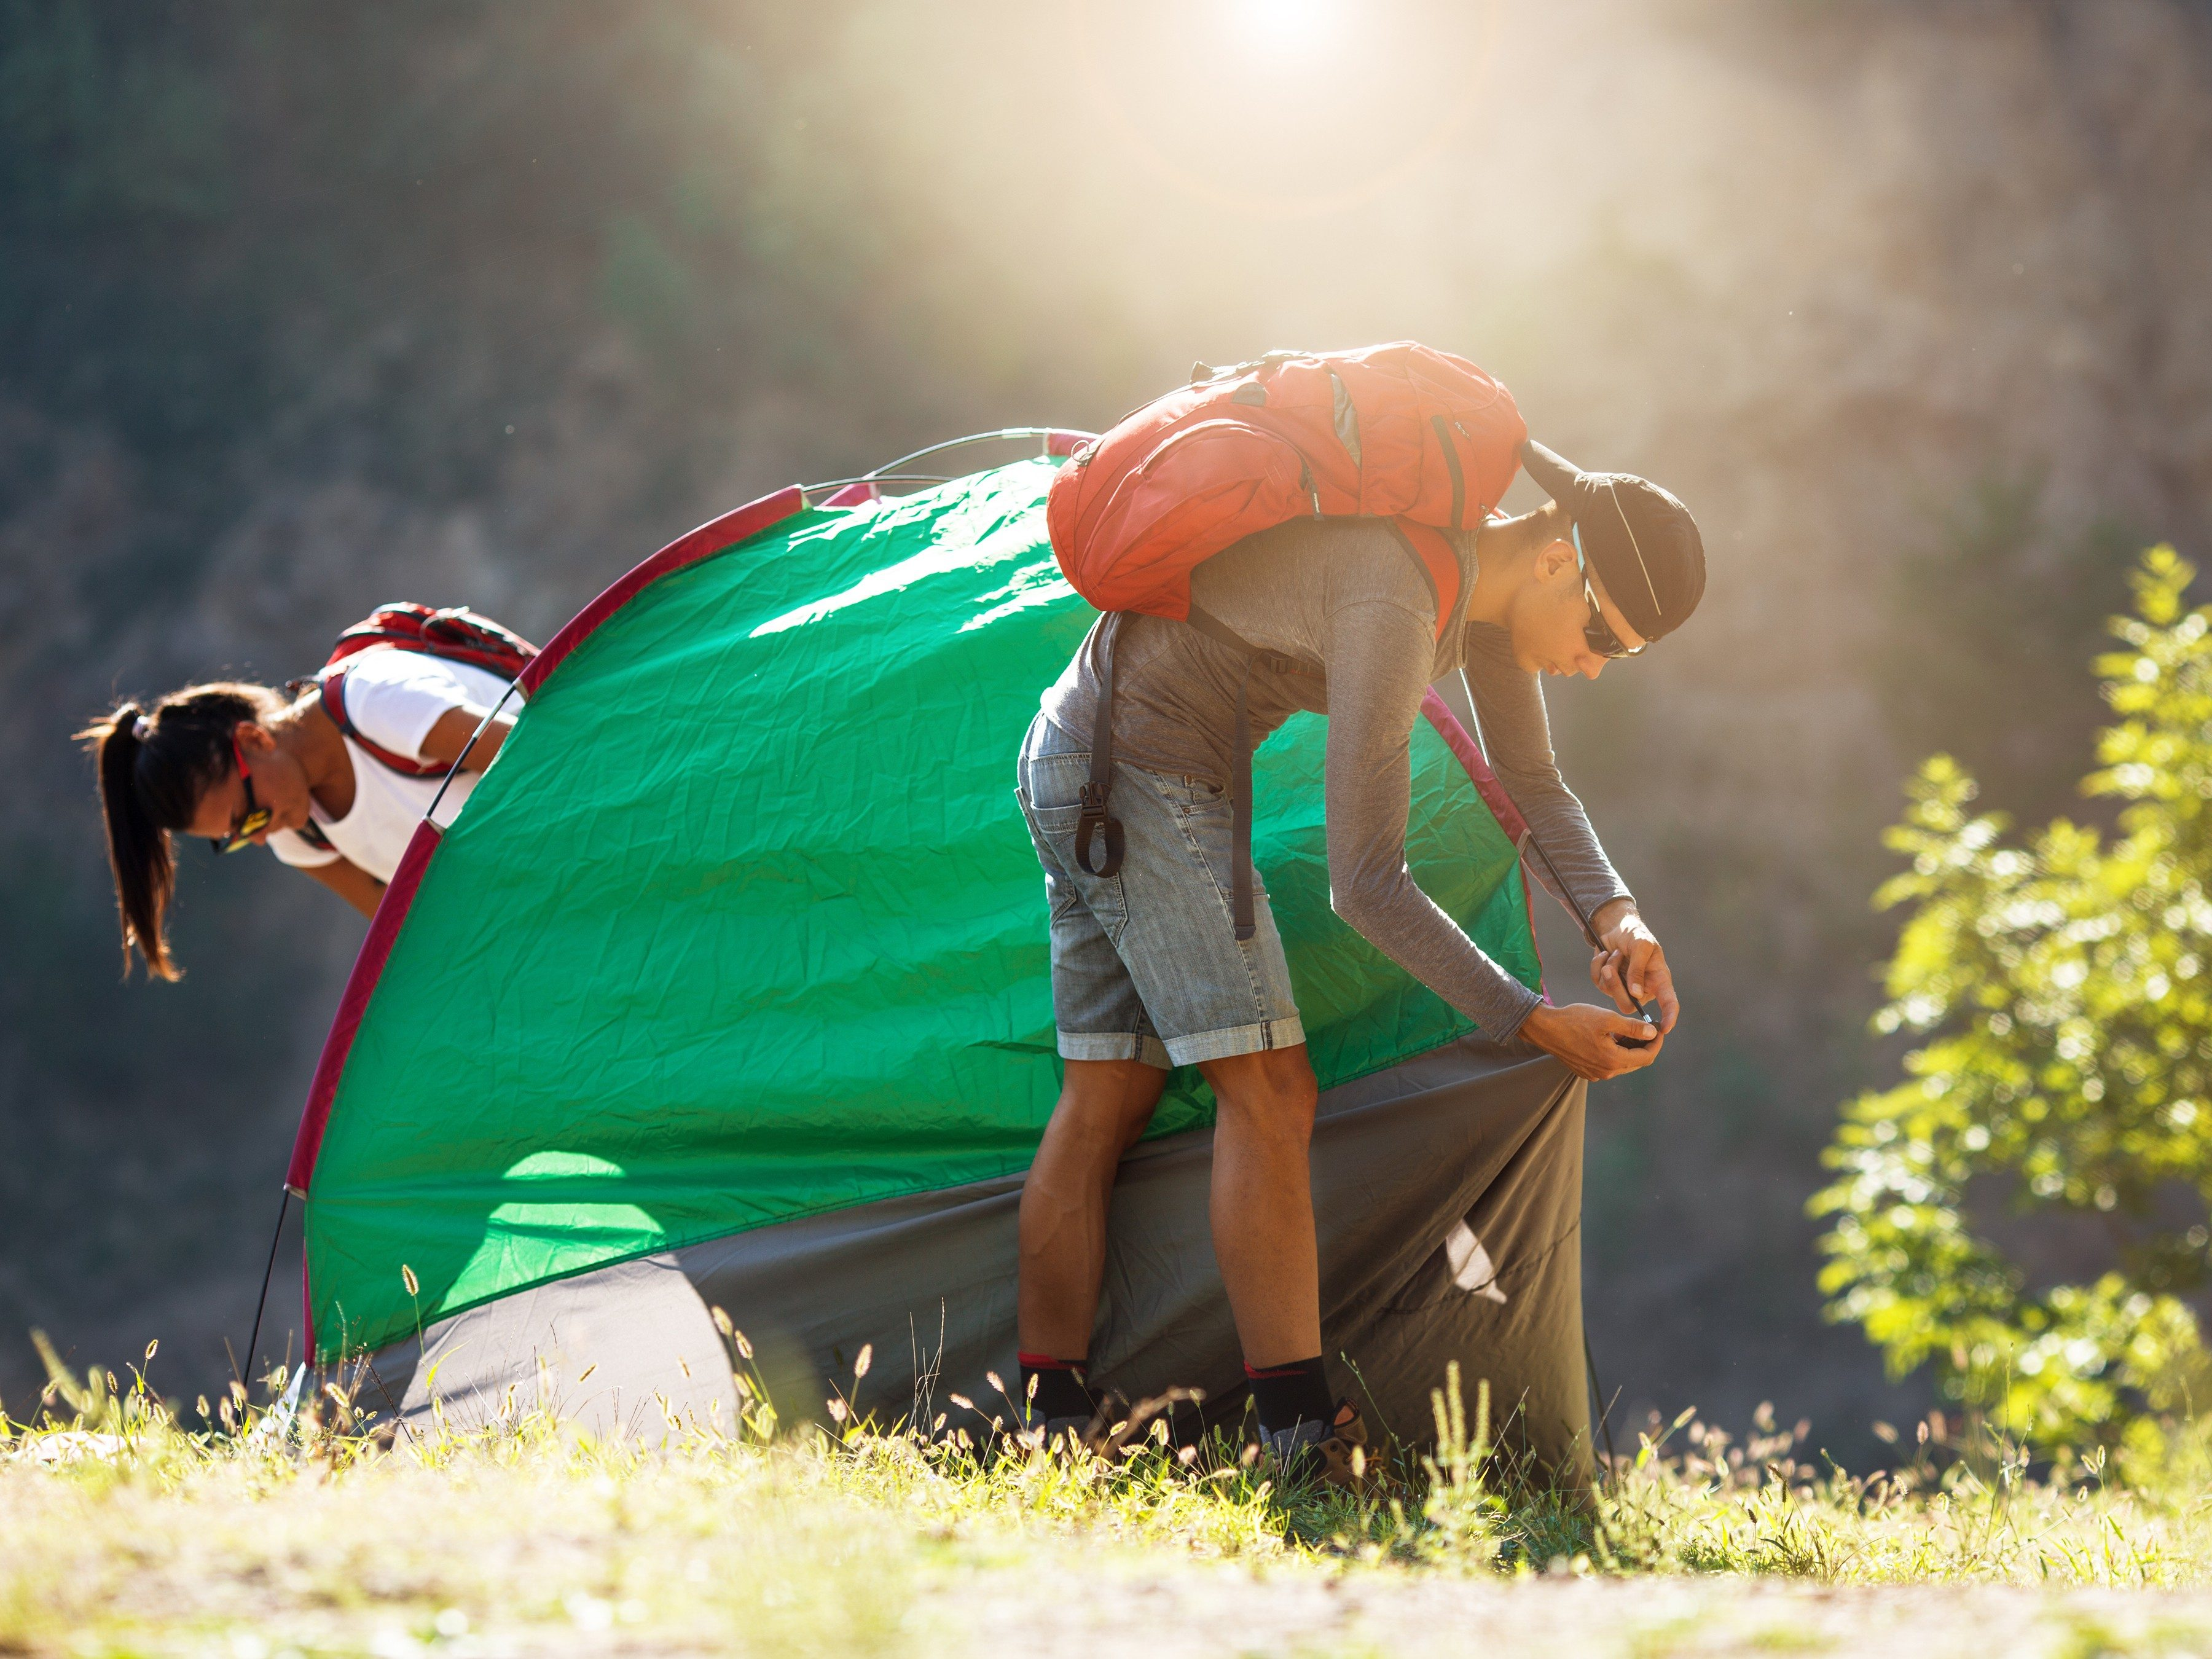 5. You Can Teach and Learn New Skills While Camping